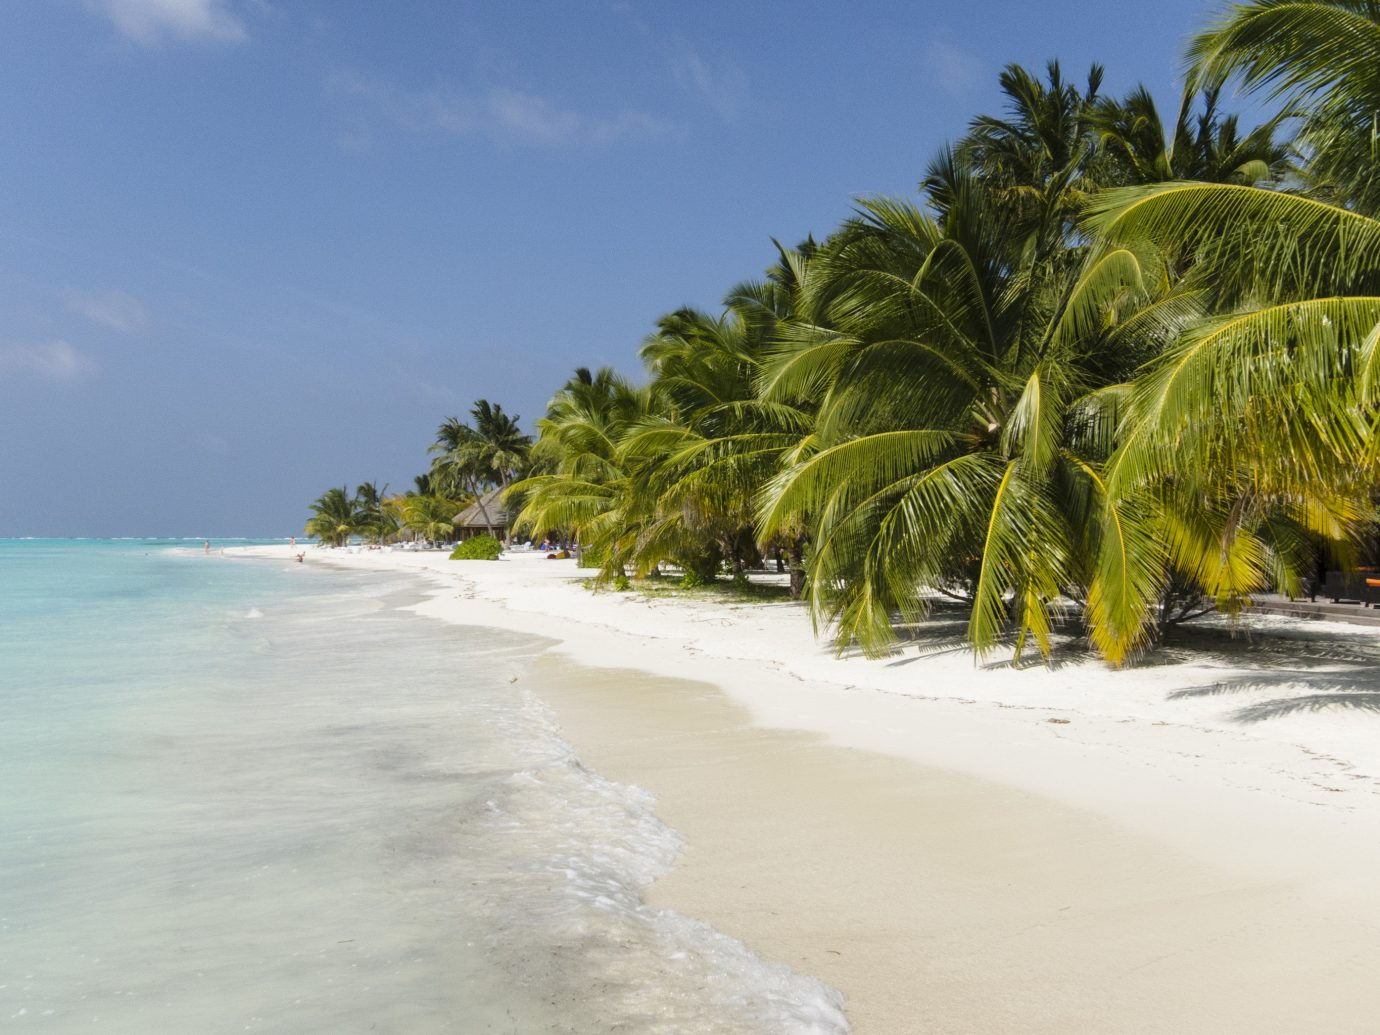 Islands Trip Ideas outdoor sky tree Beach Nature body of water shore Sea Coast Ocean caribbean vacation tropics arecales bay sand wave plant palm sandy